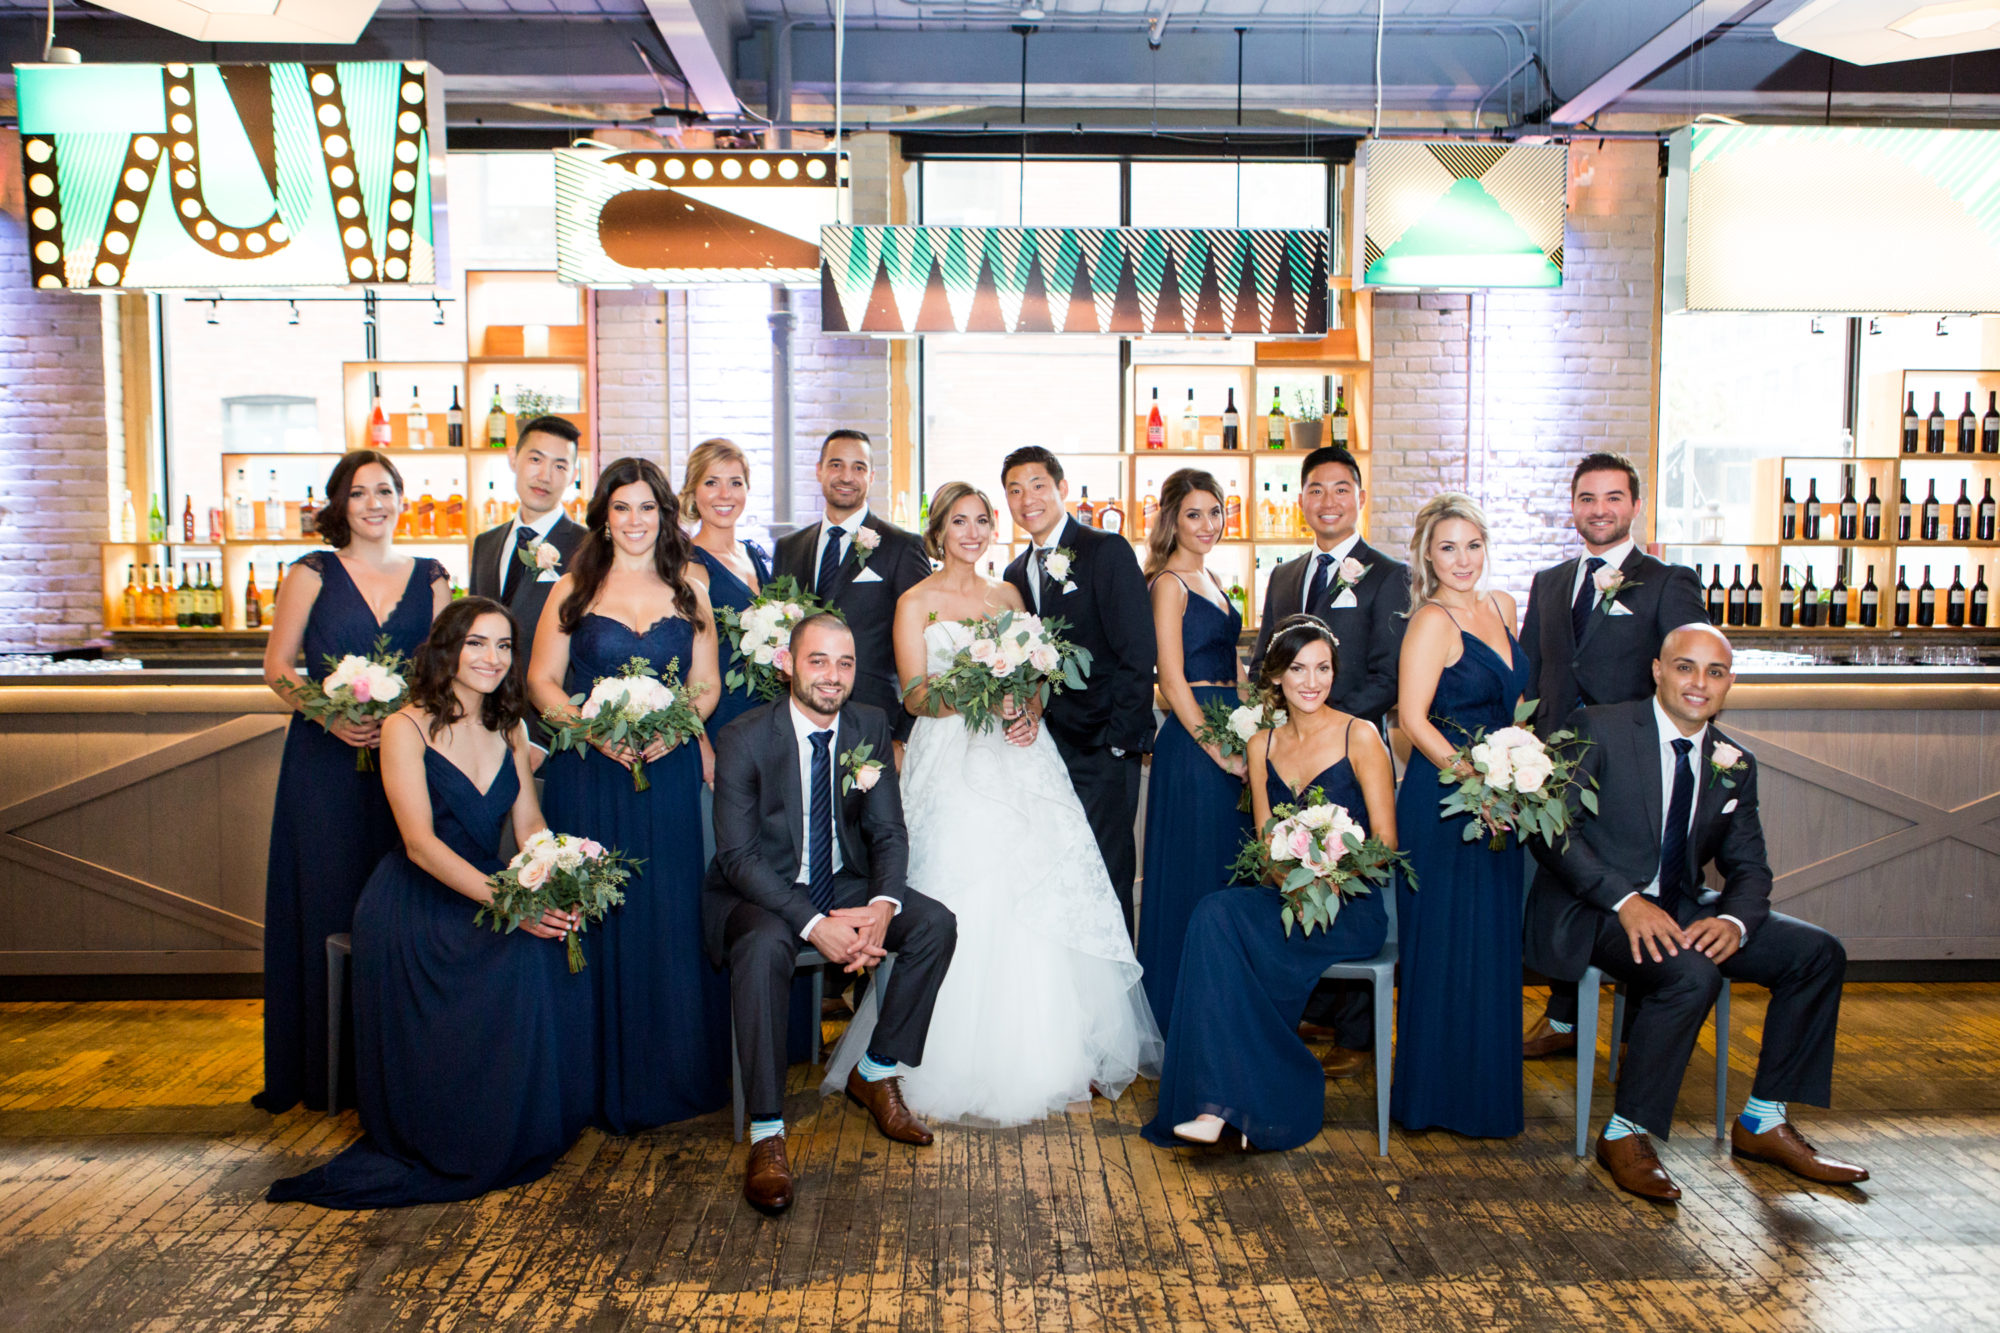 Bridal Party Bride Groom Zsuzsi Pal Photography Toronto Wedding 2nd Second Floor Events